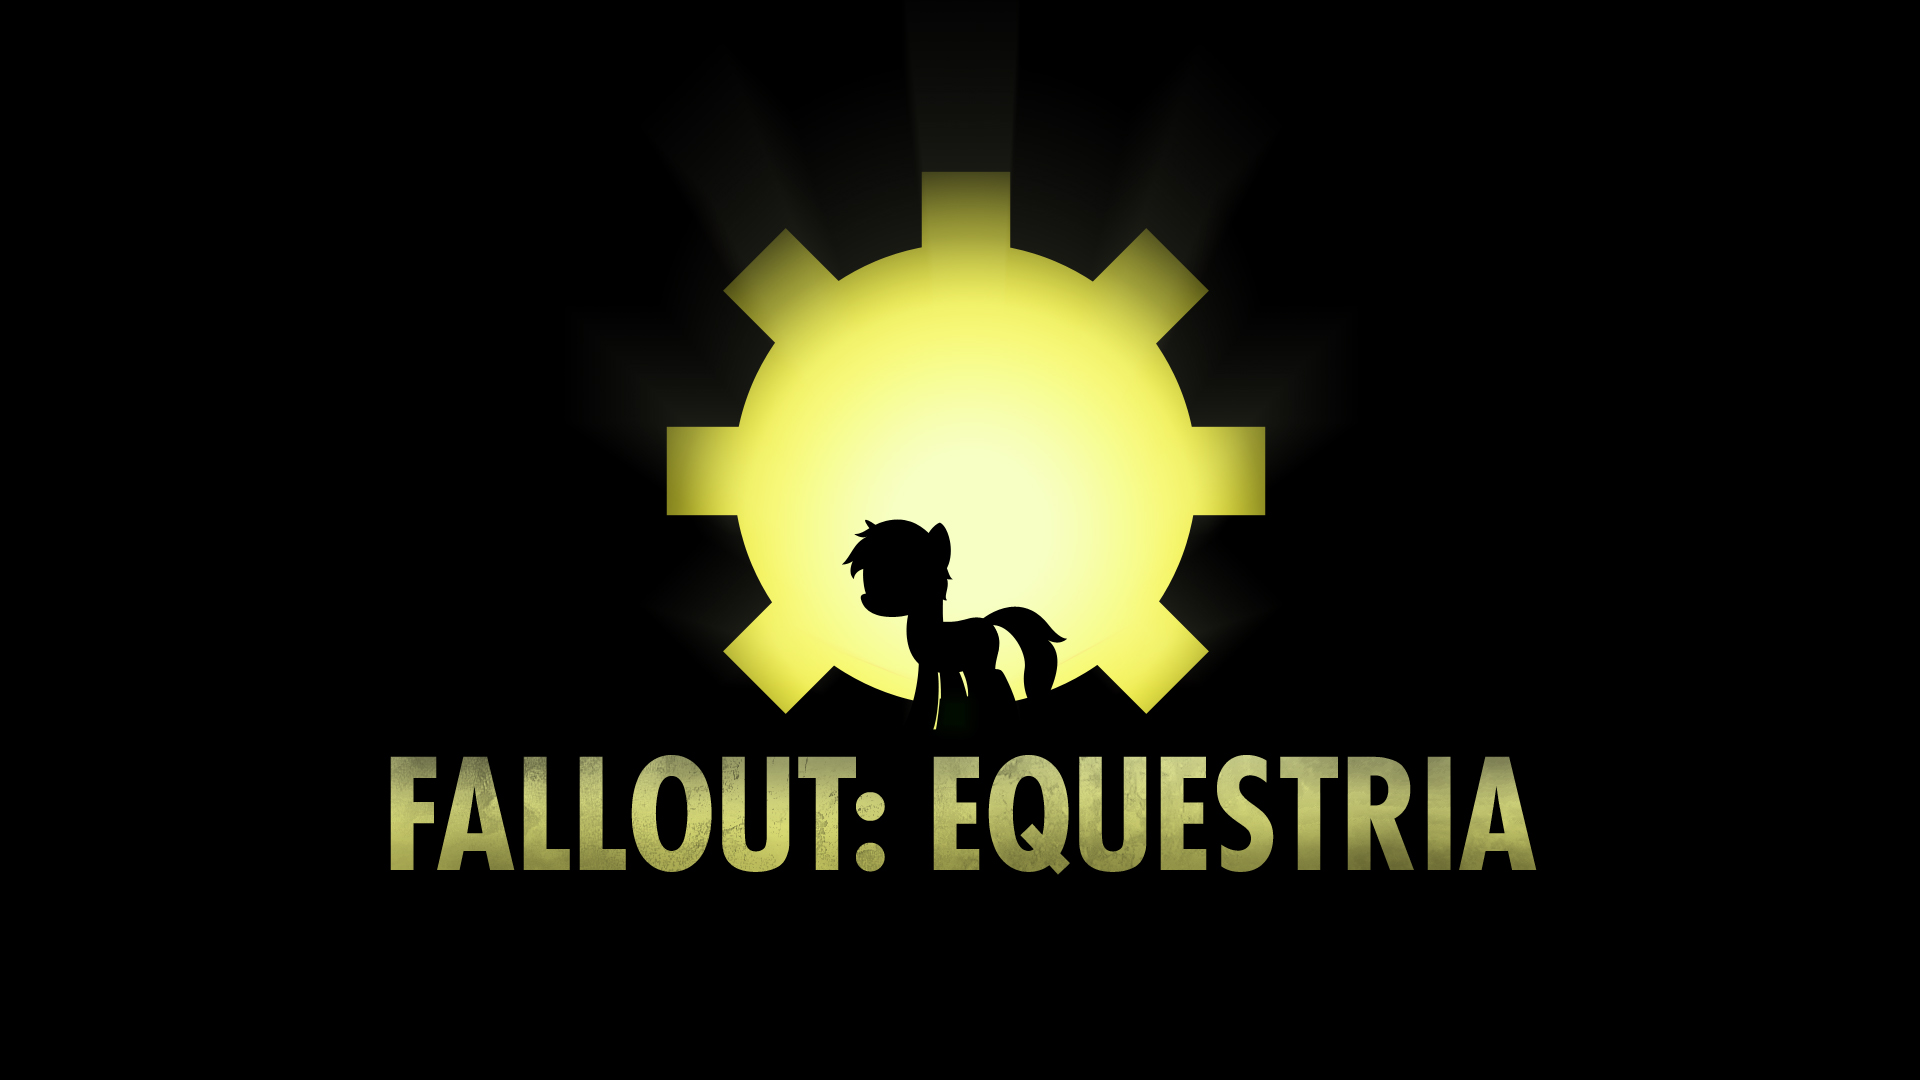 Fallout hent hardcore images